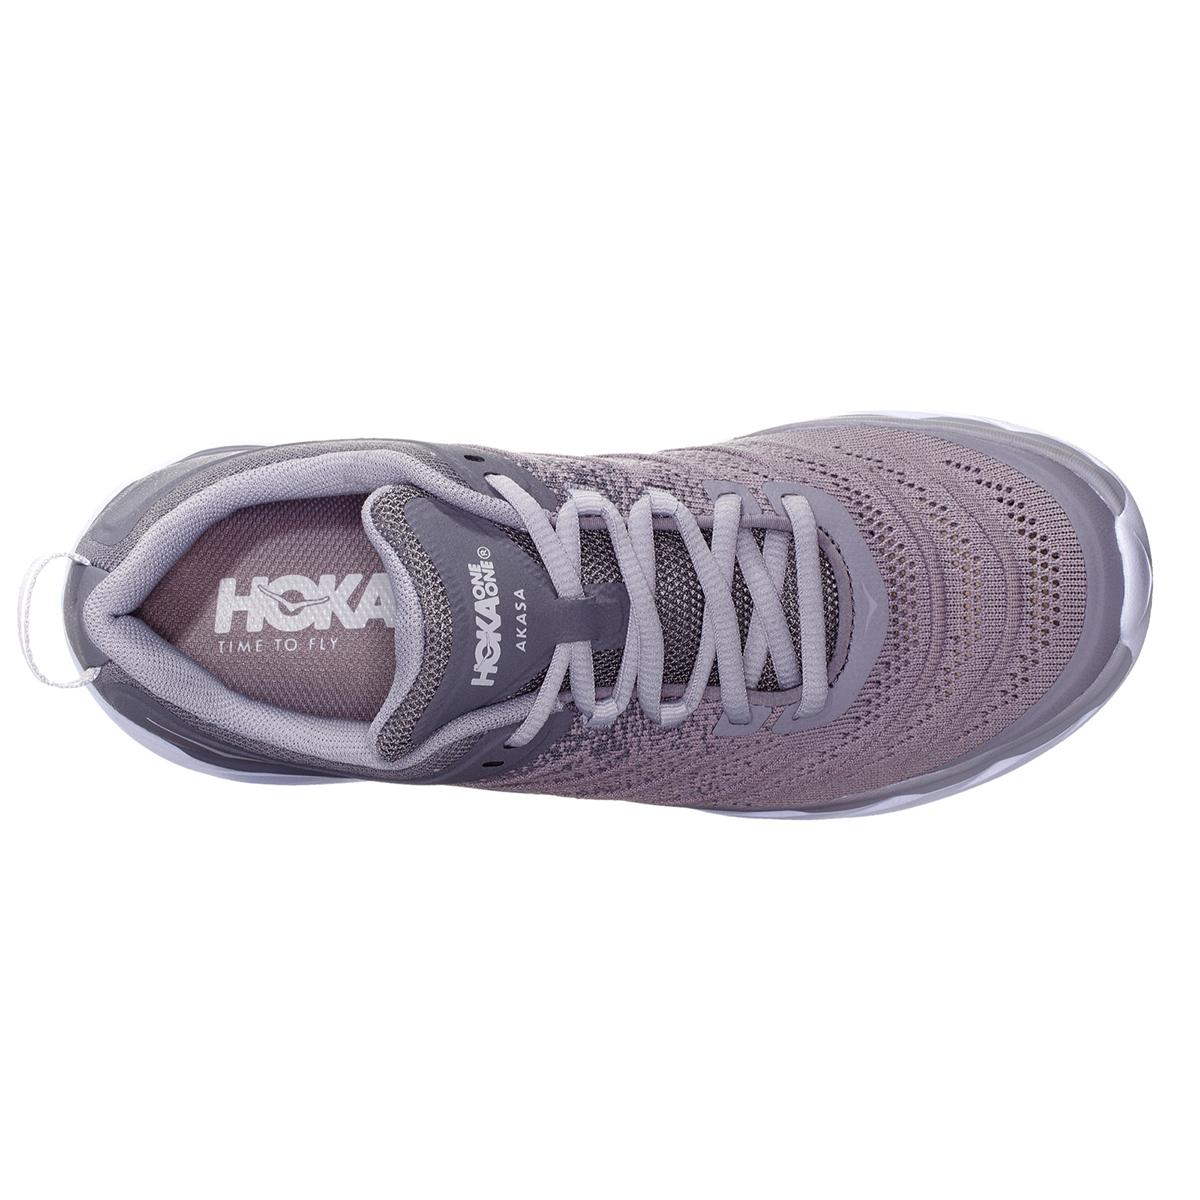 Women's Hoka One One Akasa Running Shoe - Color: Frost Gray/Sconce - Size: 5 - Width: Regular, Frost Gray/Sconce, large, image 3